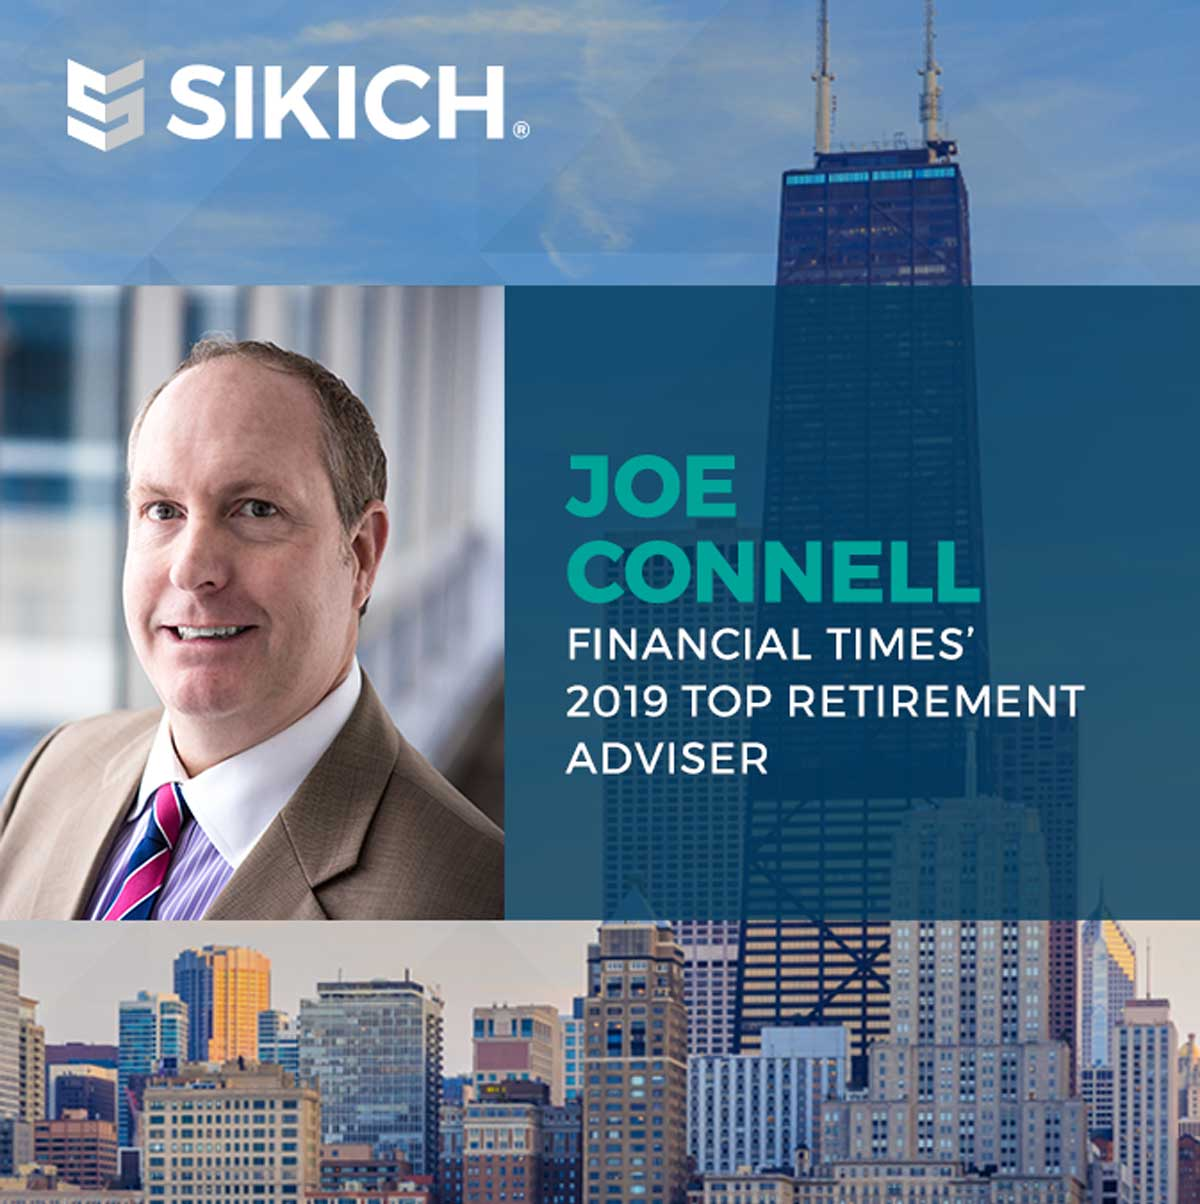 a professional headshot of Joe Connell, with the text reading Joe Connell, Financial Times 2019 Top Retirement Advisor and the backdrop is a Chicago skyline